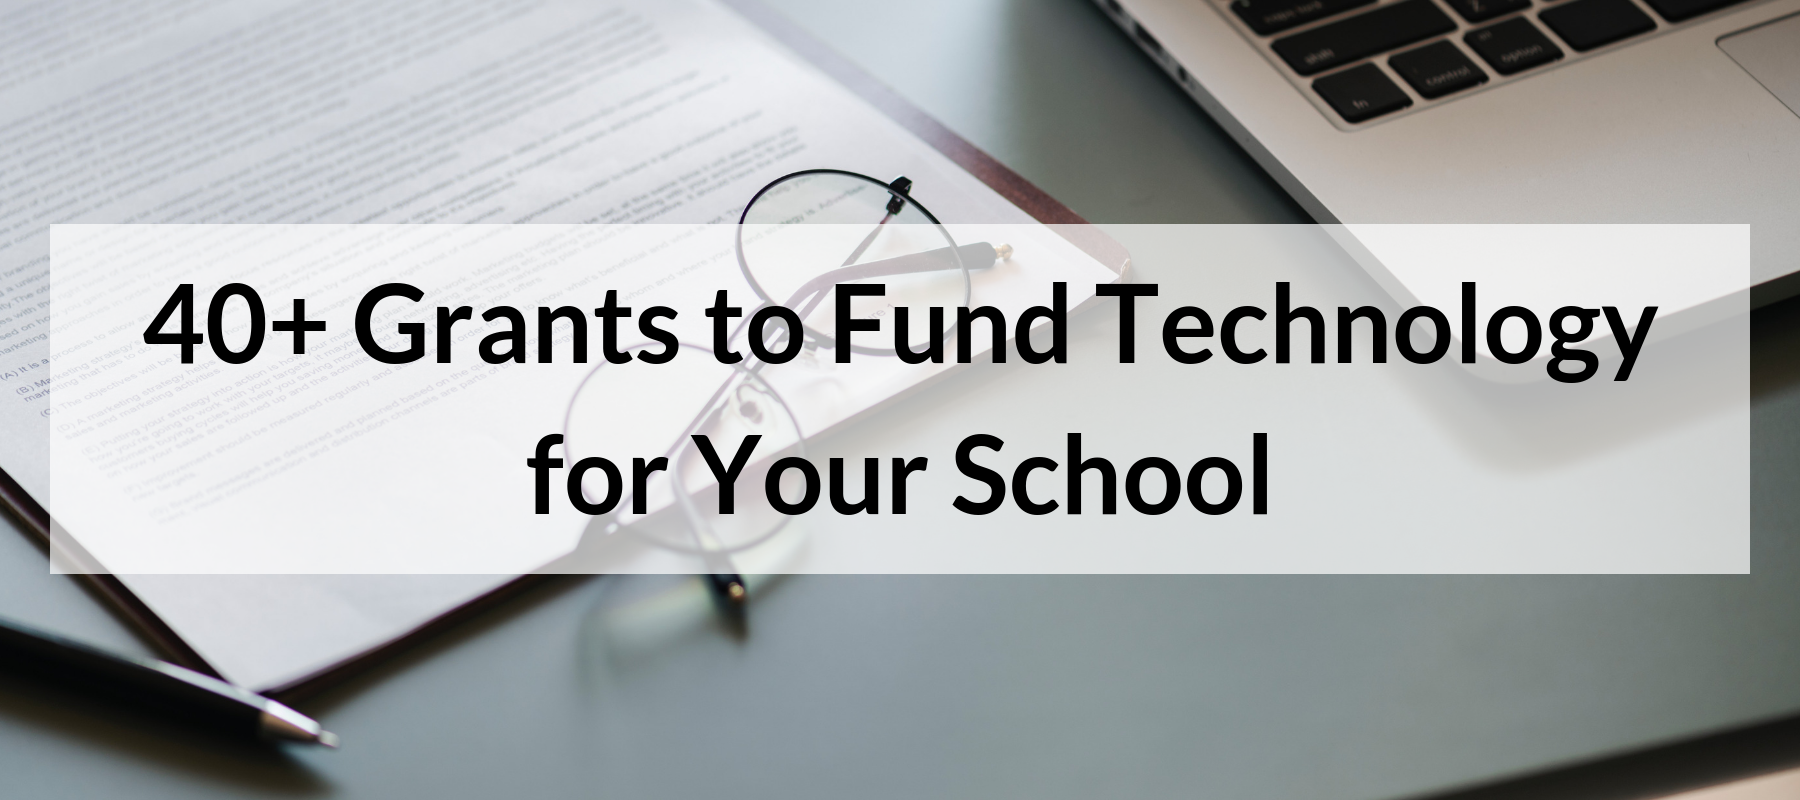 40+ Grants to Fund Technology for Your School